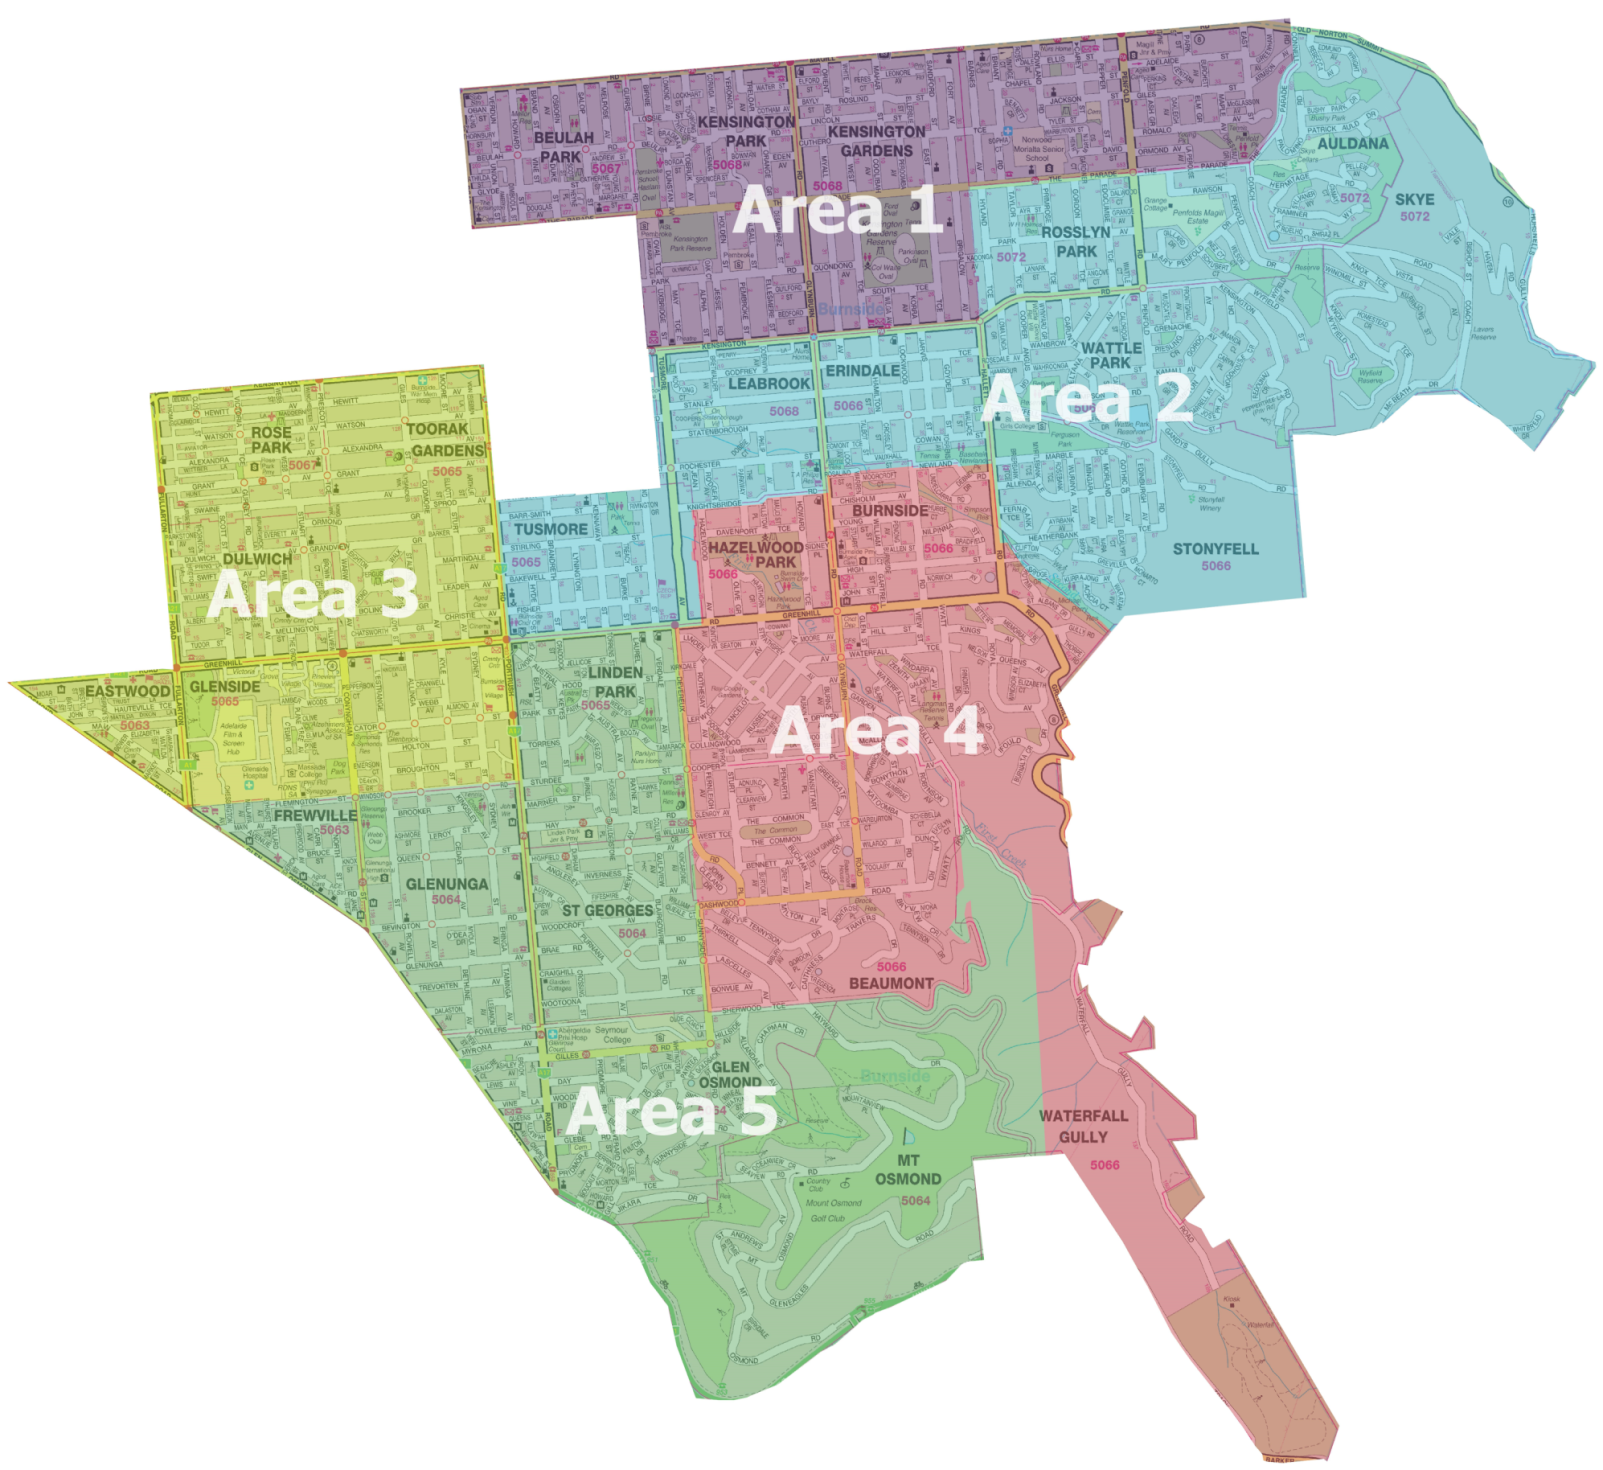 Waste collection areas in the City of Burnside